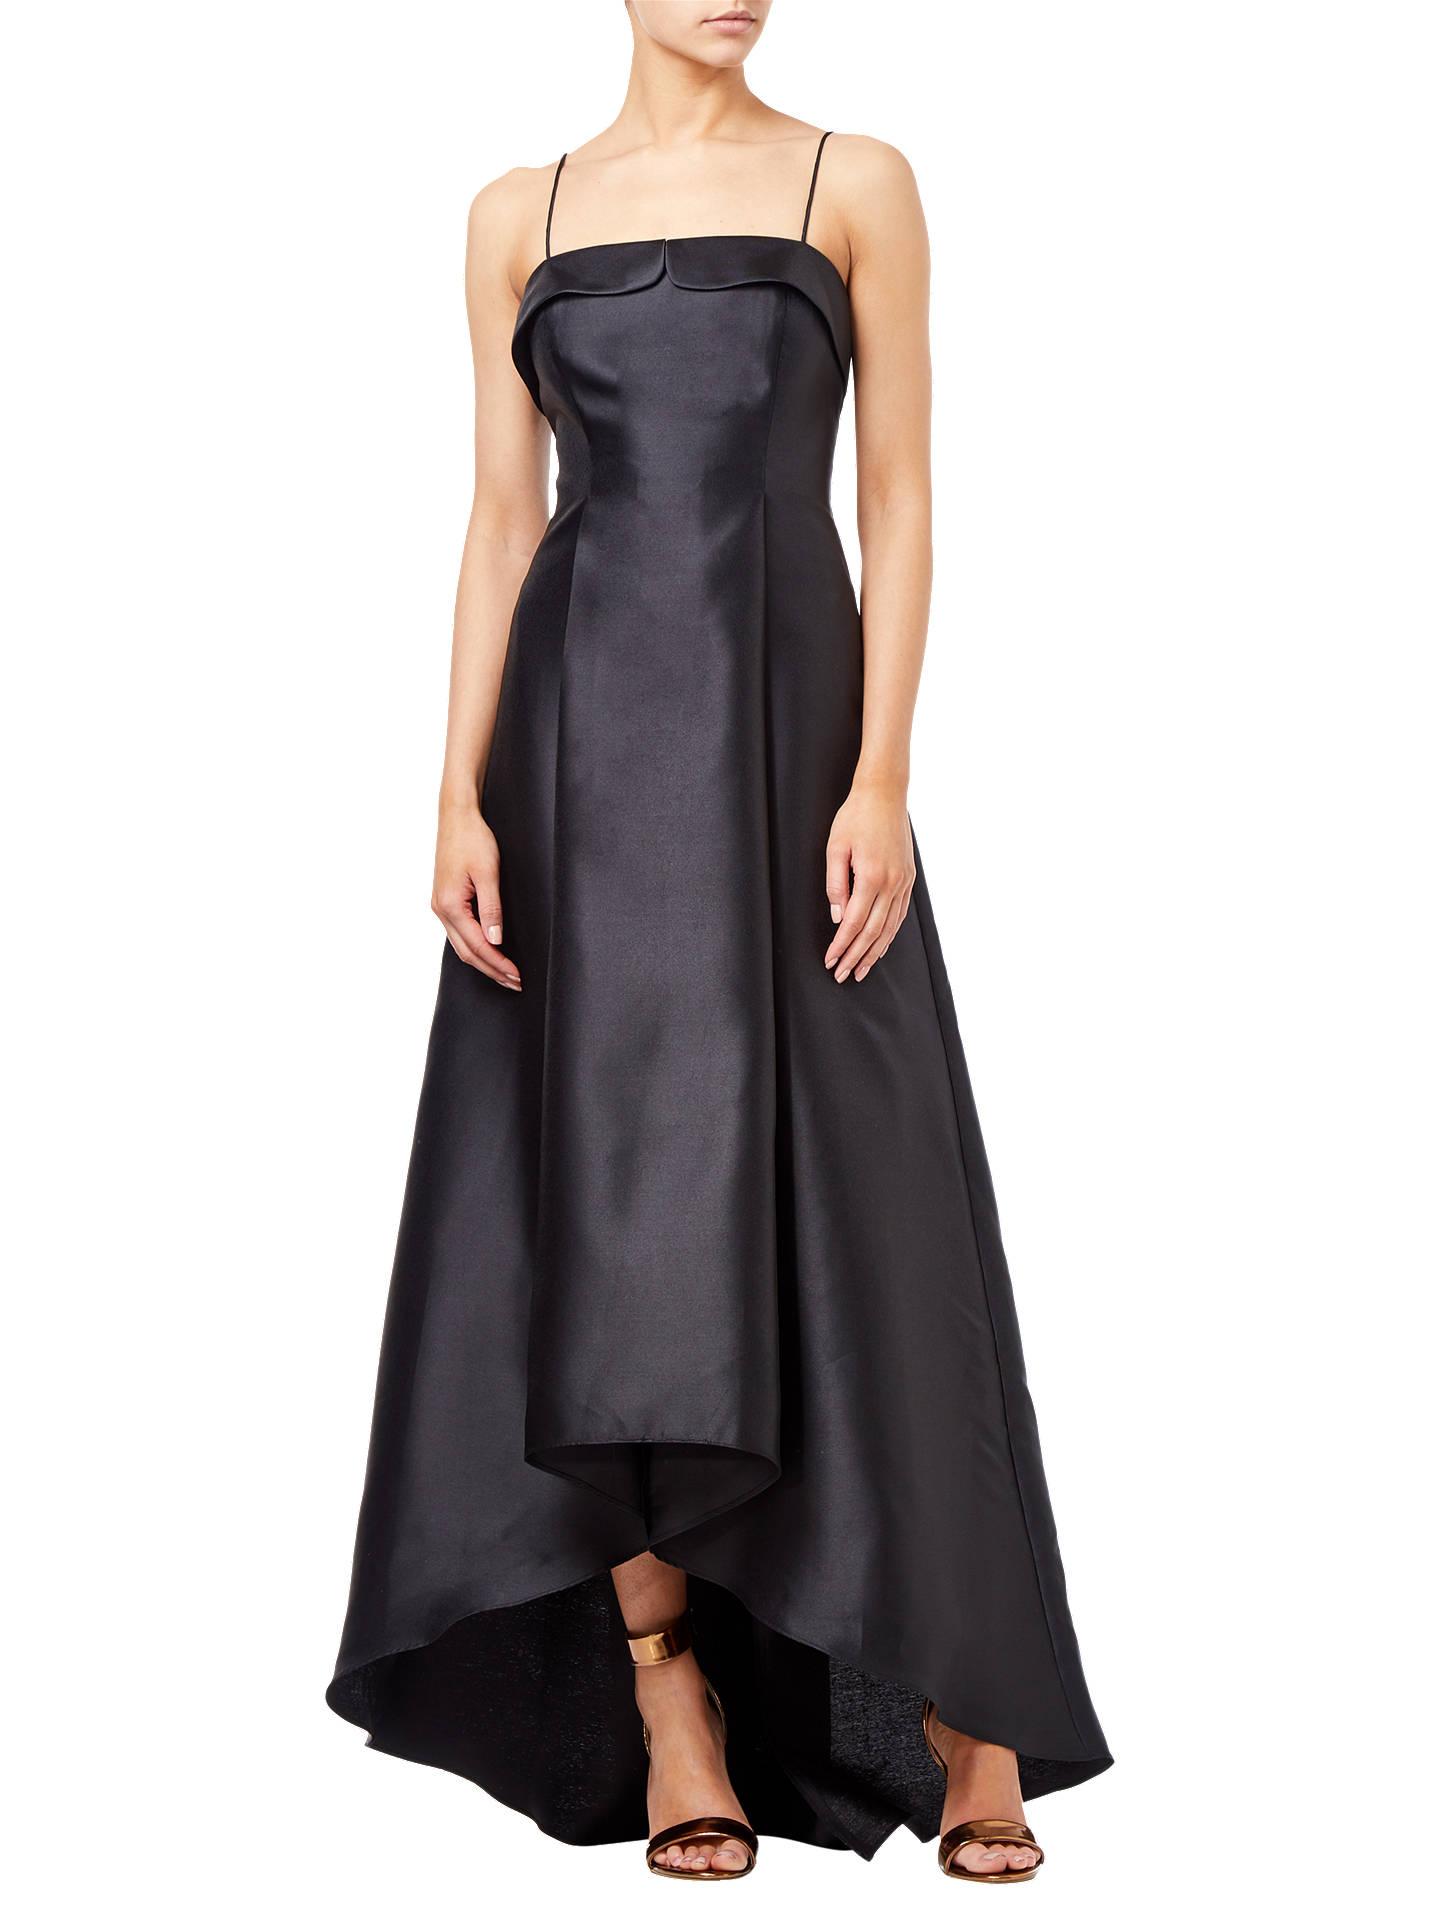 Buy Adrianna Papell Mikado Asymmetric Long Dress, Black, 8 Online at johnlewis.com